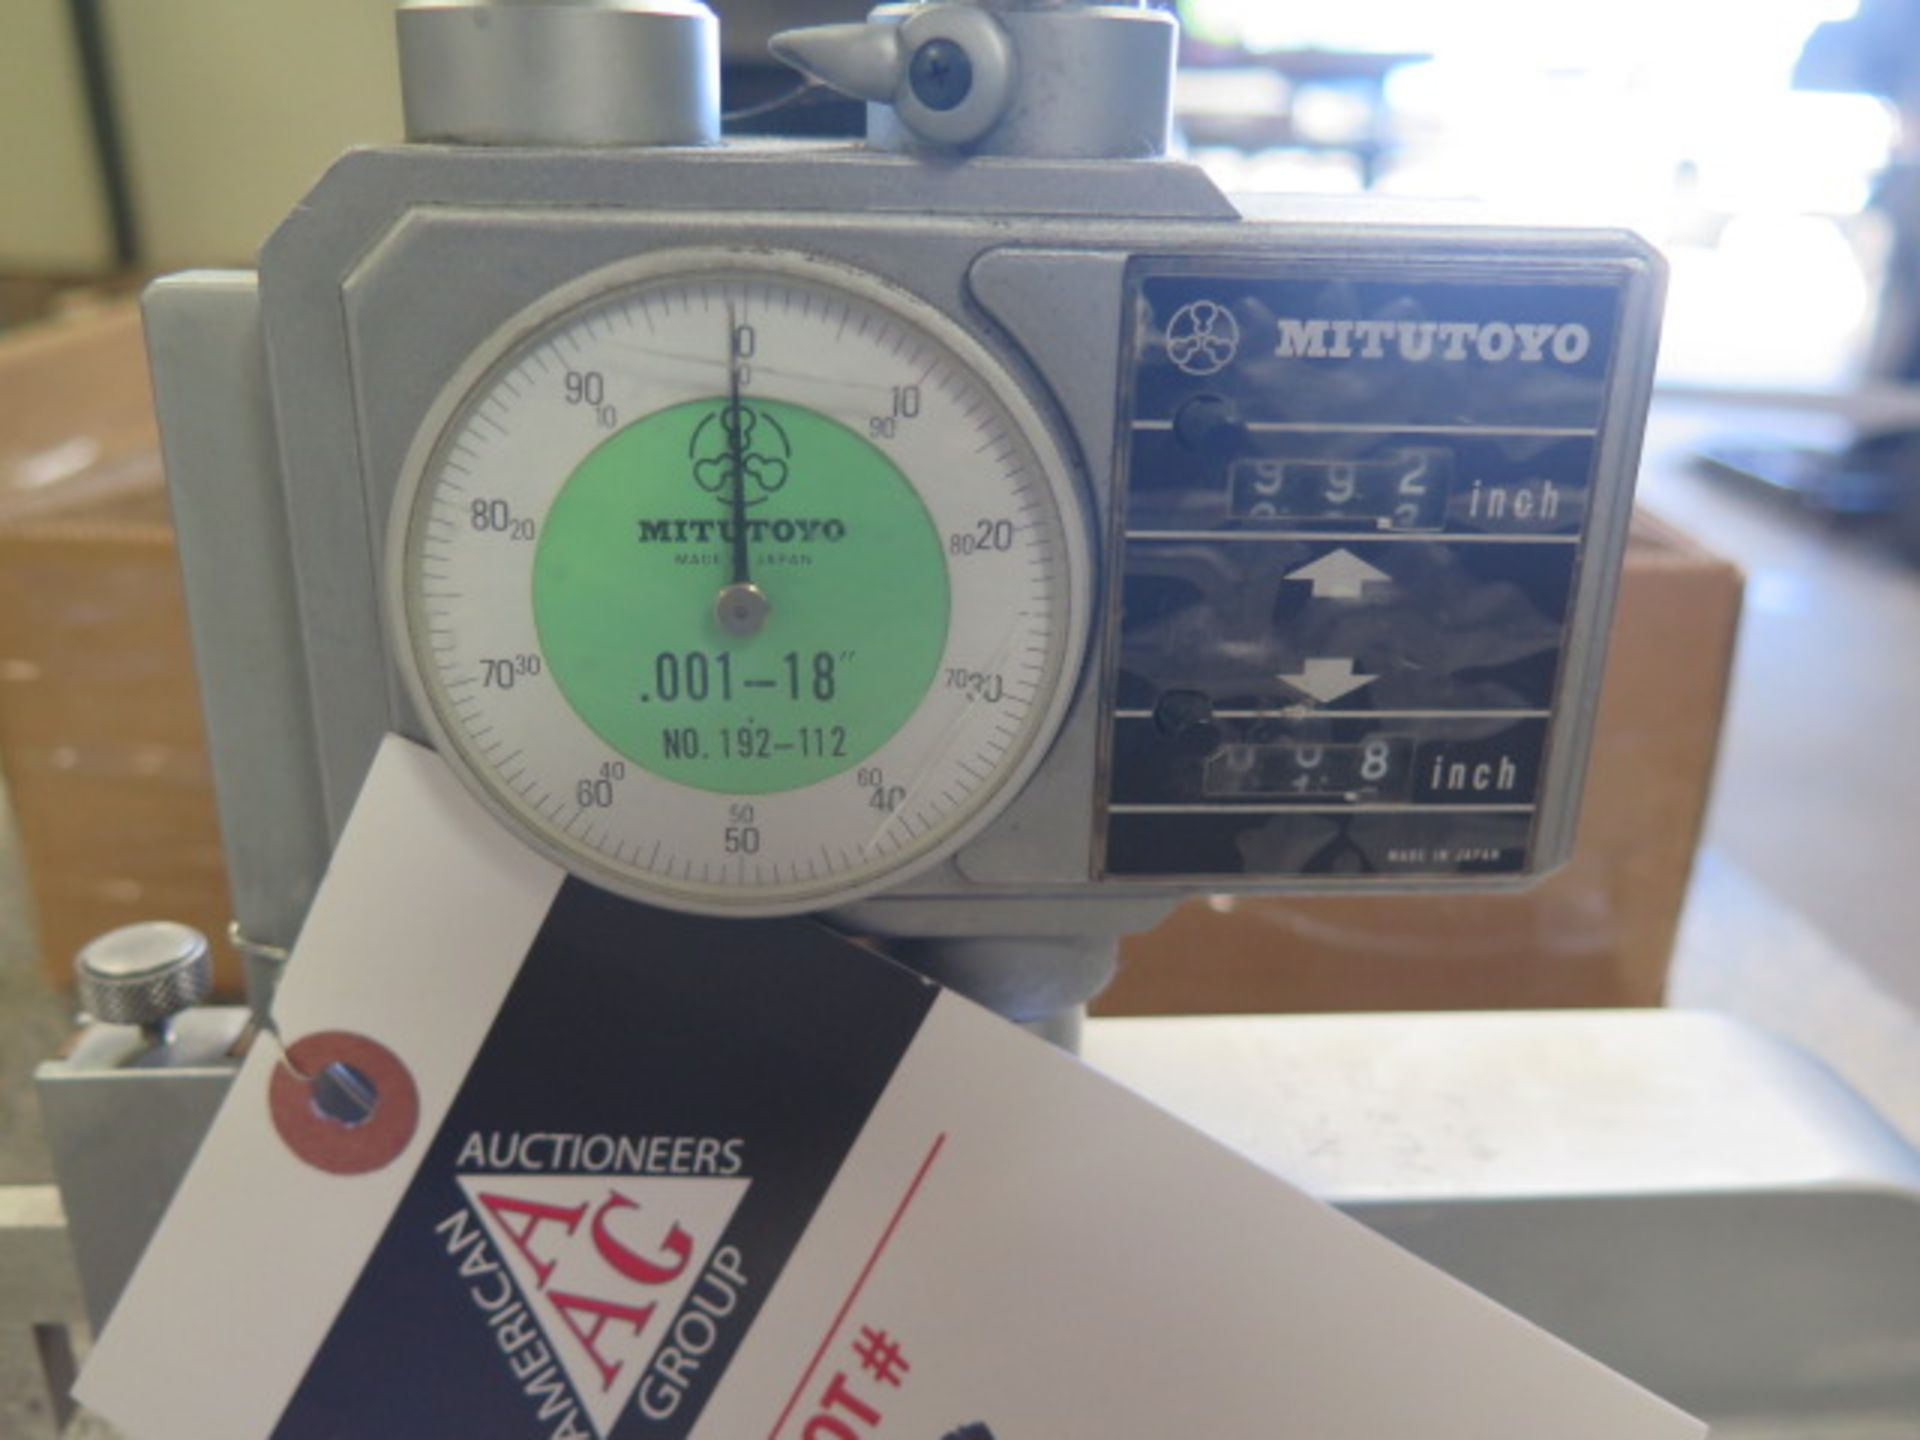 """Mitutoyo 18"""" Dial Height Gage (SOLD AS-IS - NO WARRANTY) - Image 2 of 4"""